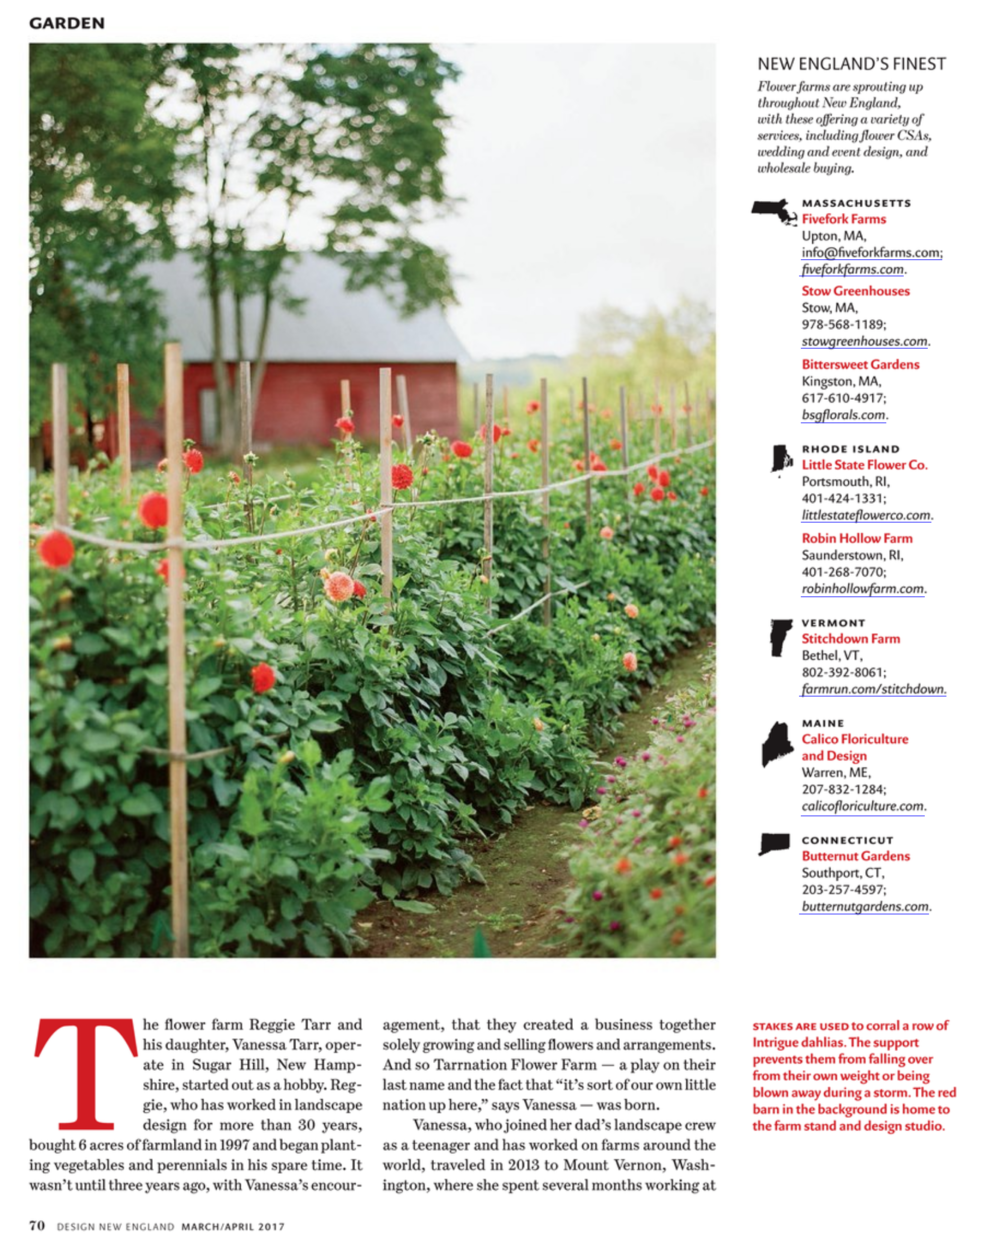 Stitchdown Farm in New England Design Magazine